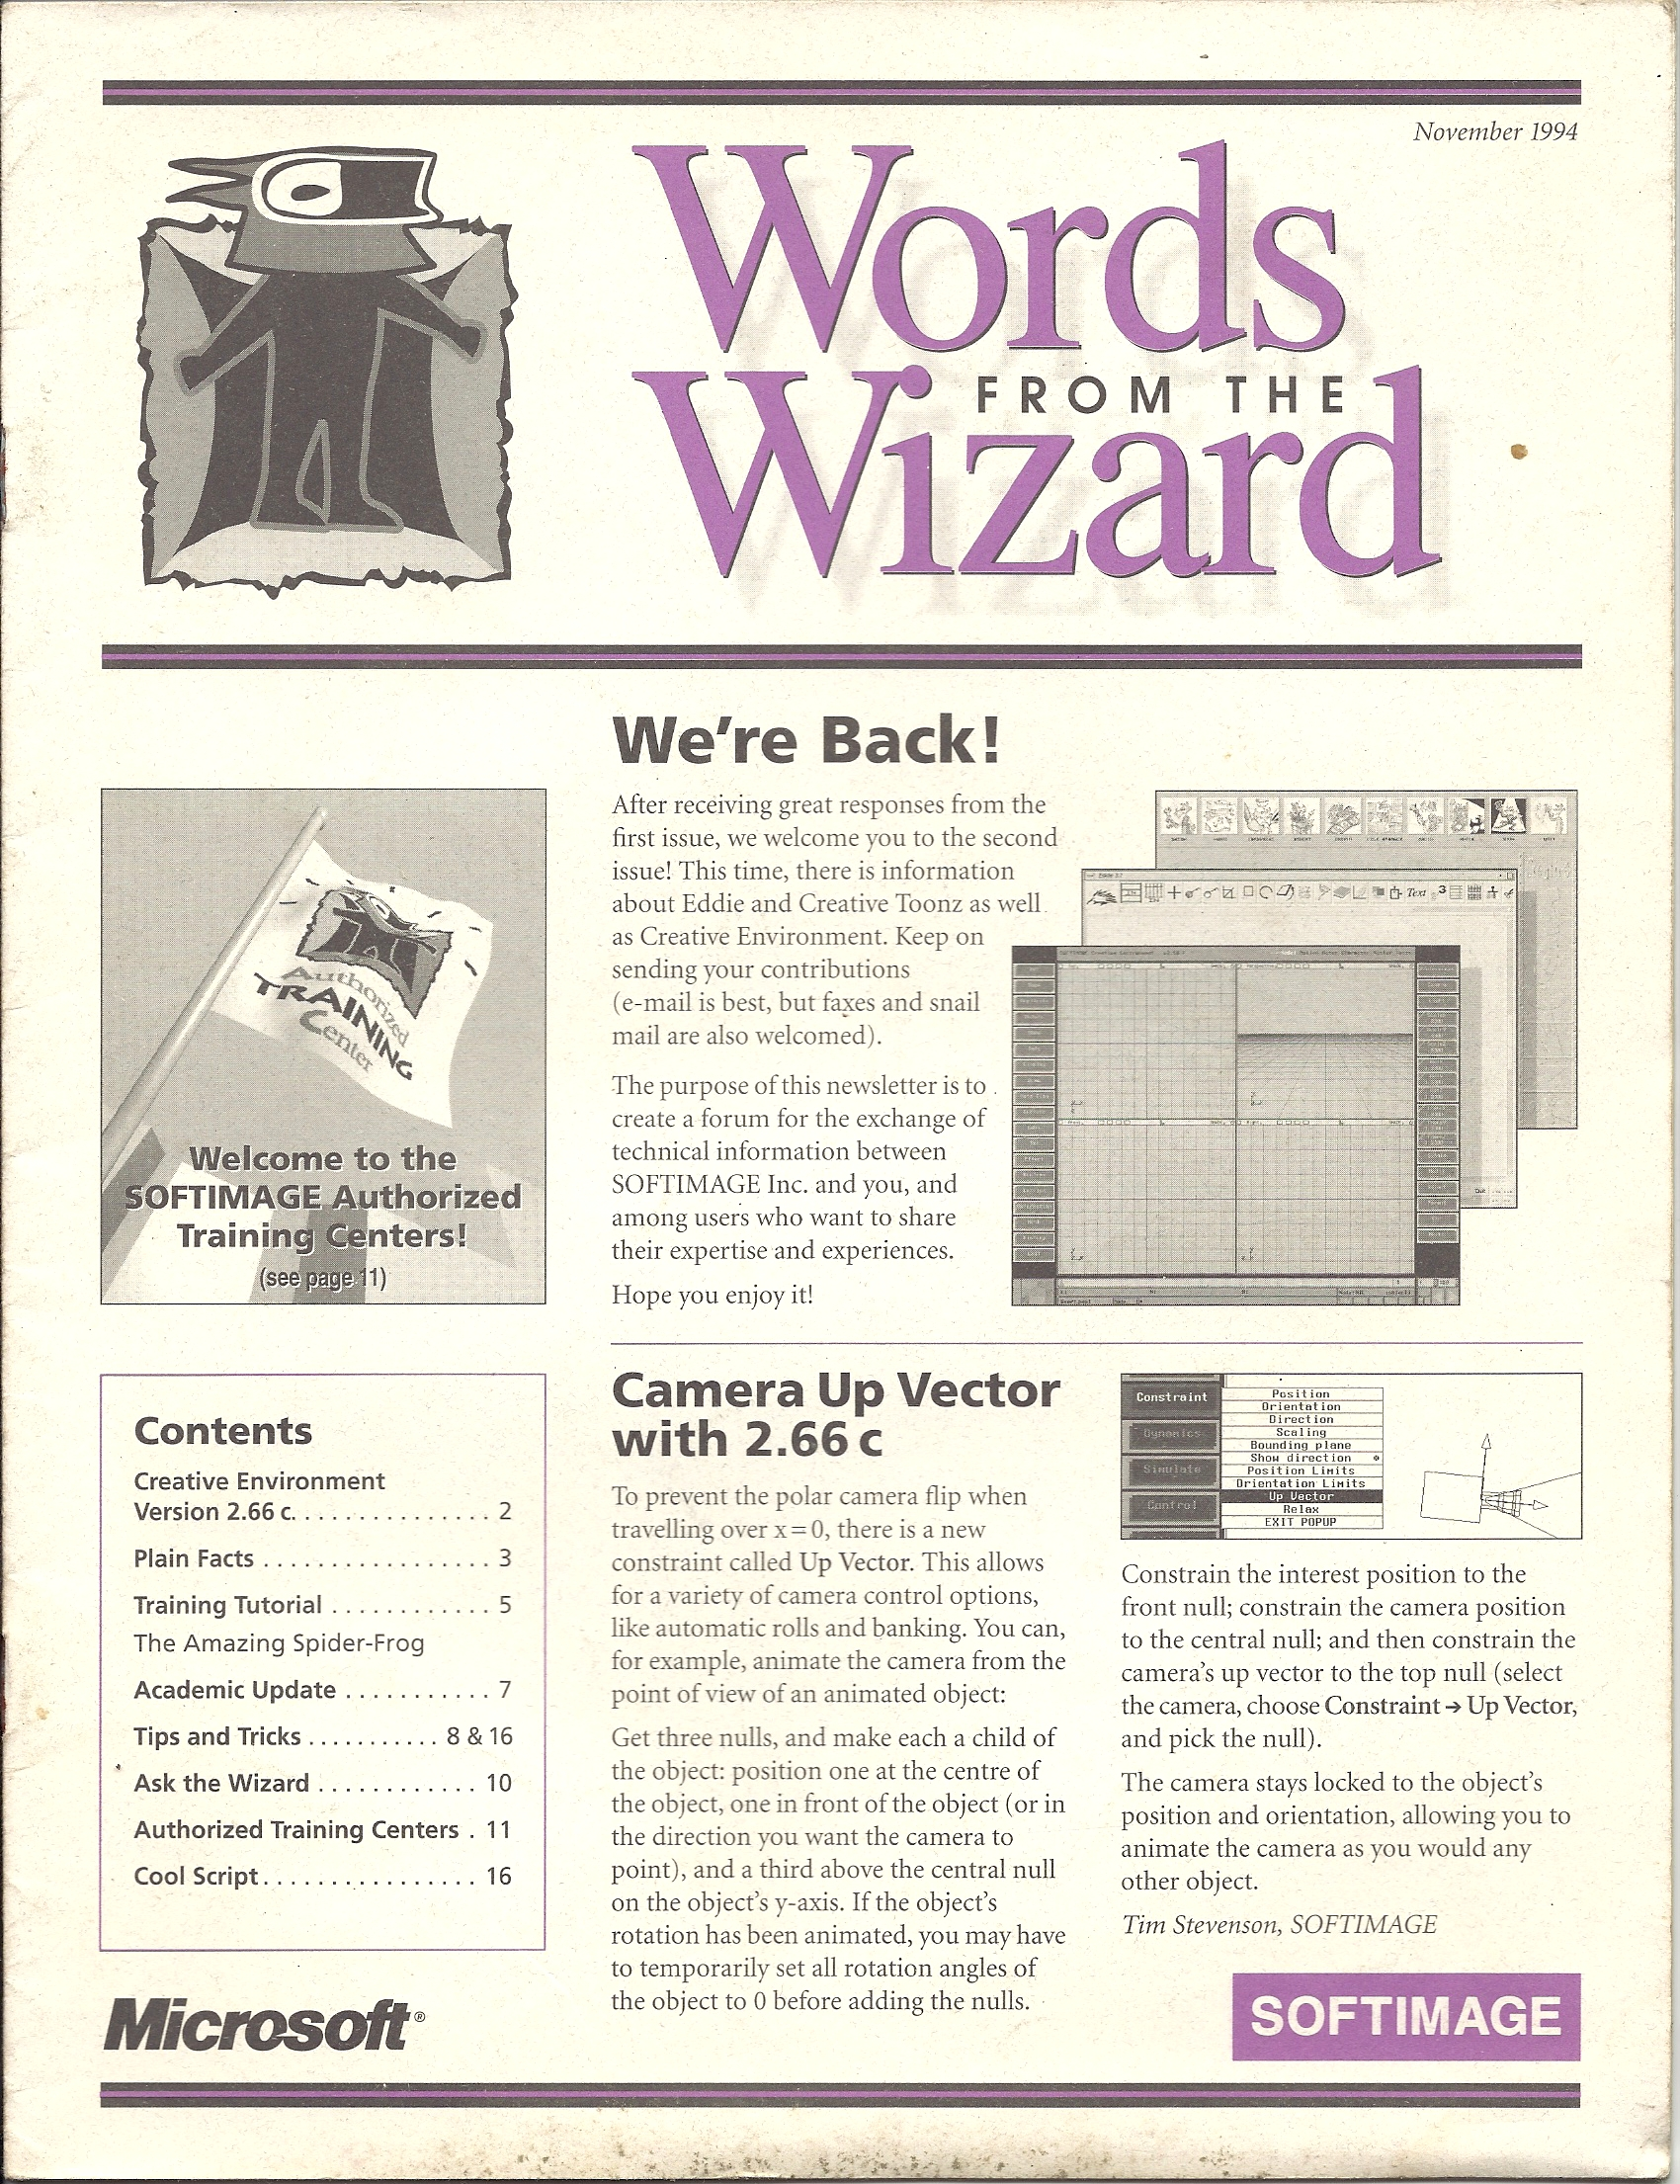 Softimage_1994_words_from_the_wizard_magazine